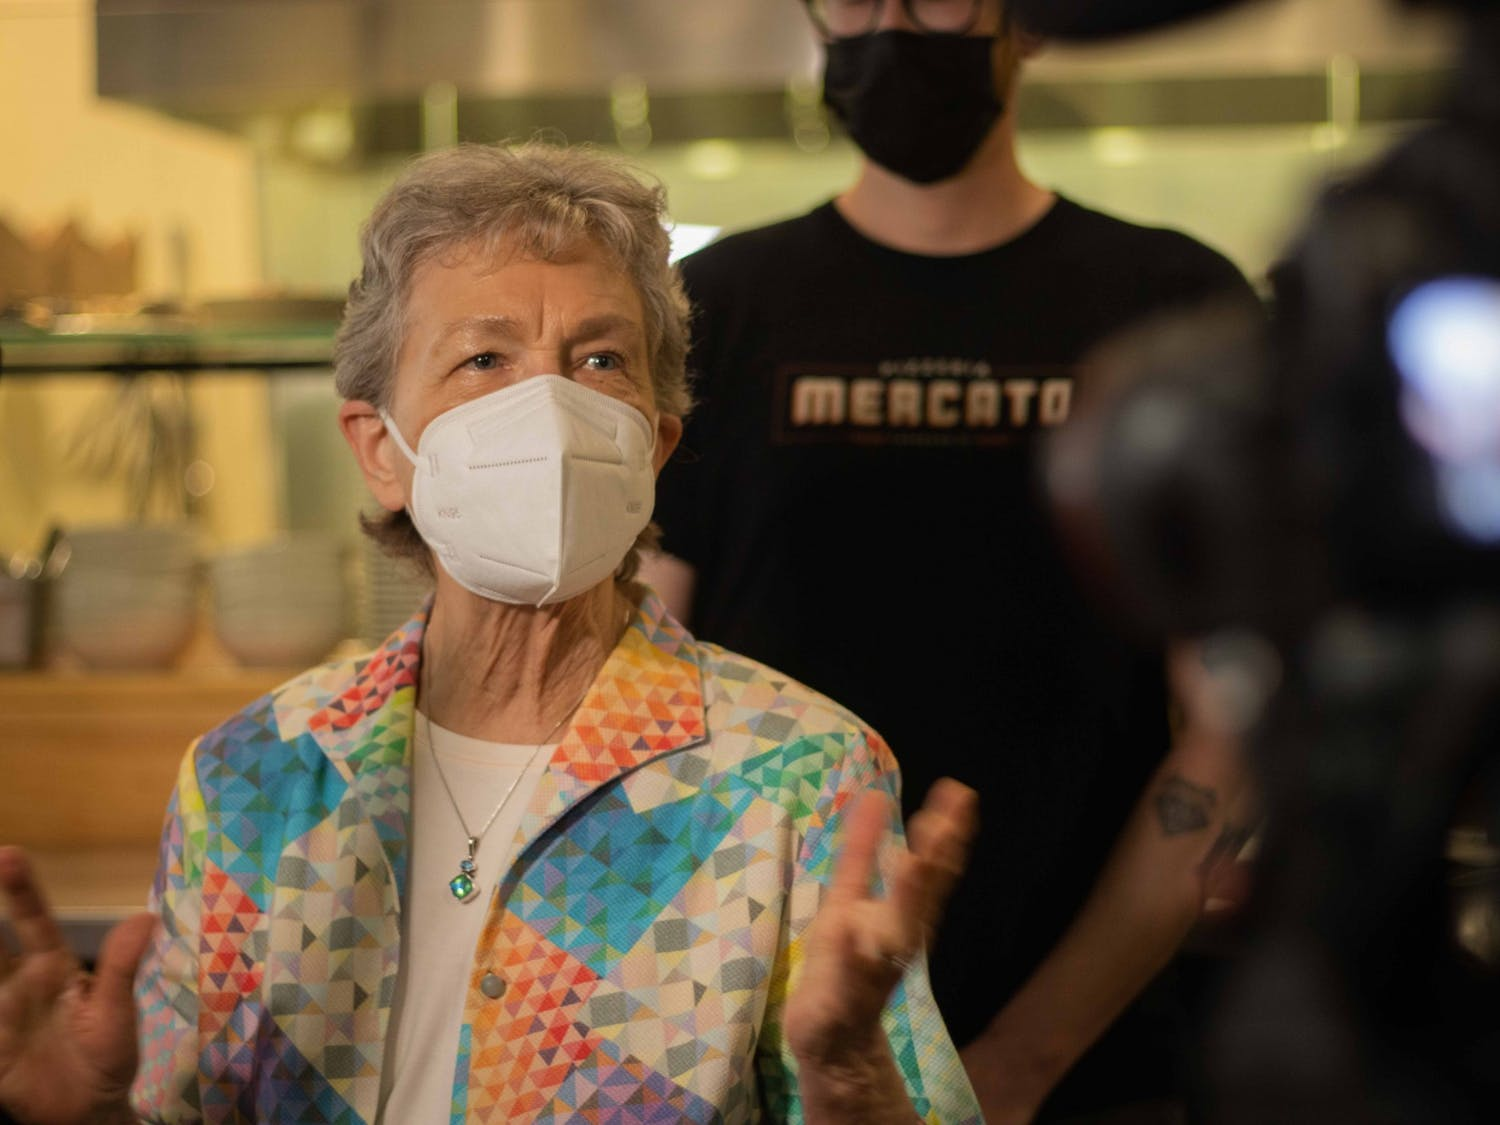 Rep. Verla Insko speaks Thursday at Pizzeria Mercato in Carrboro, which recently implemented a vaccination requirement to dine there.